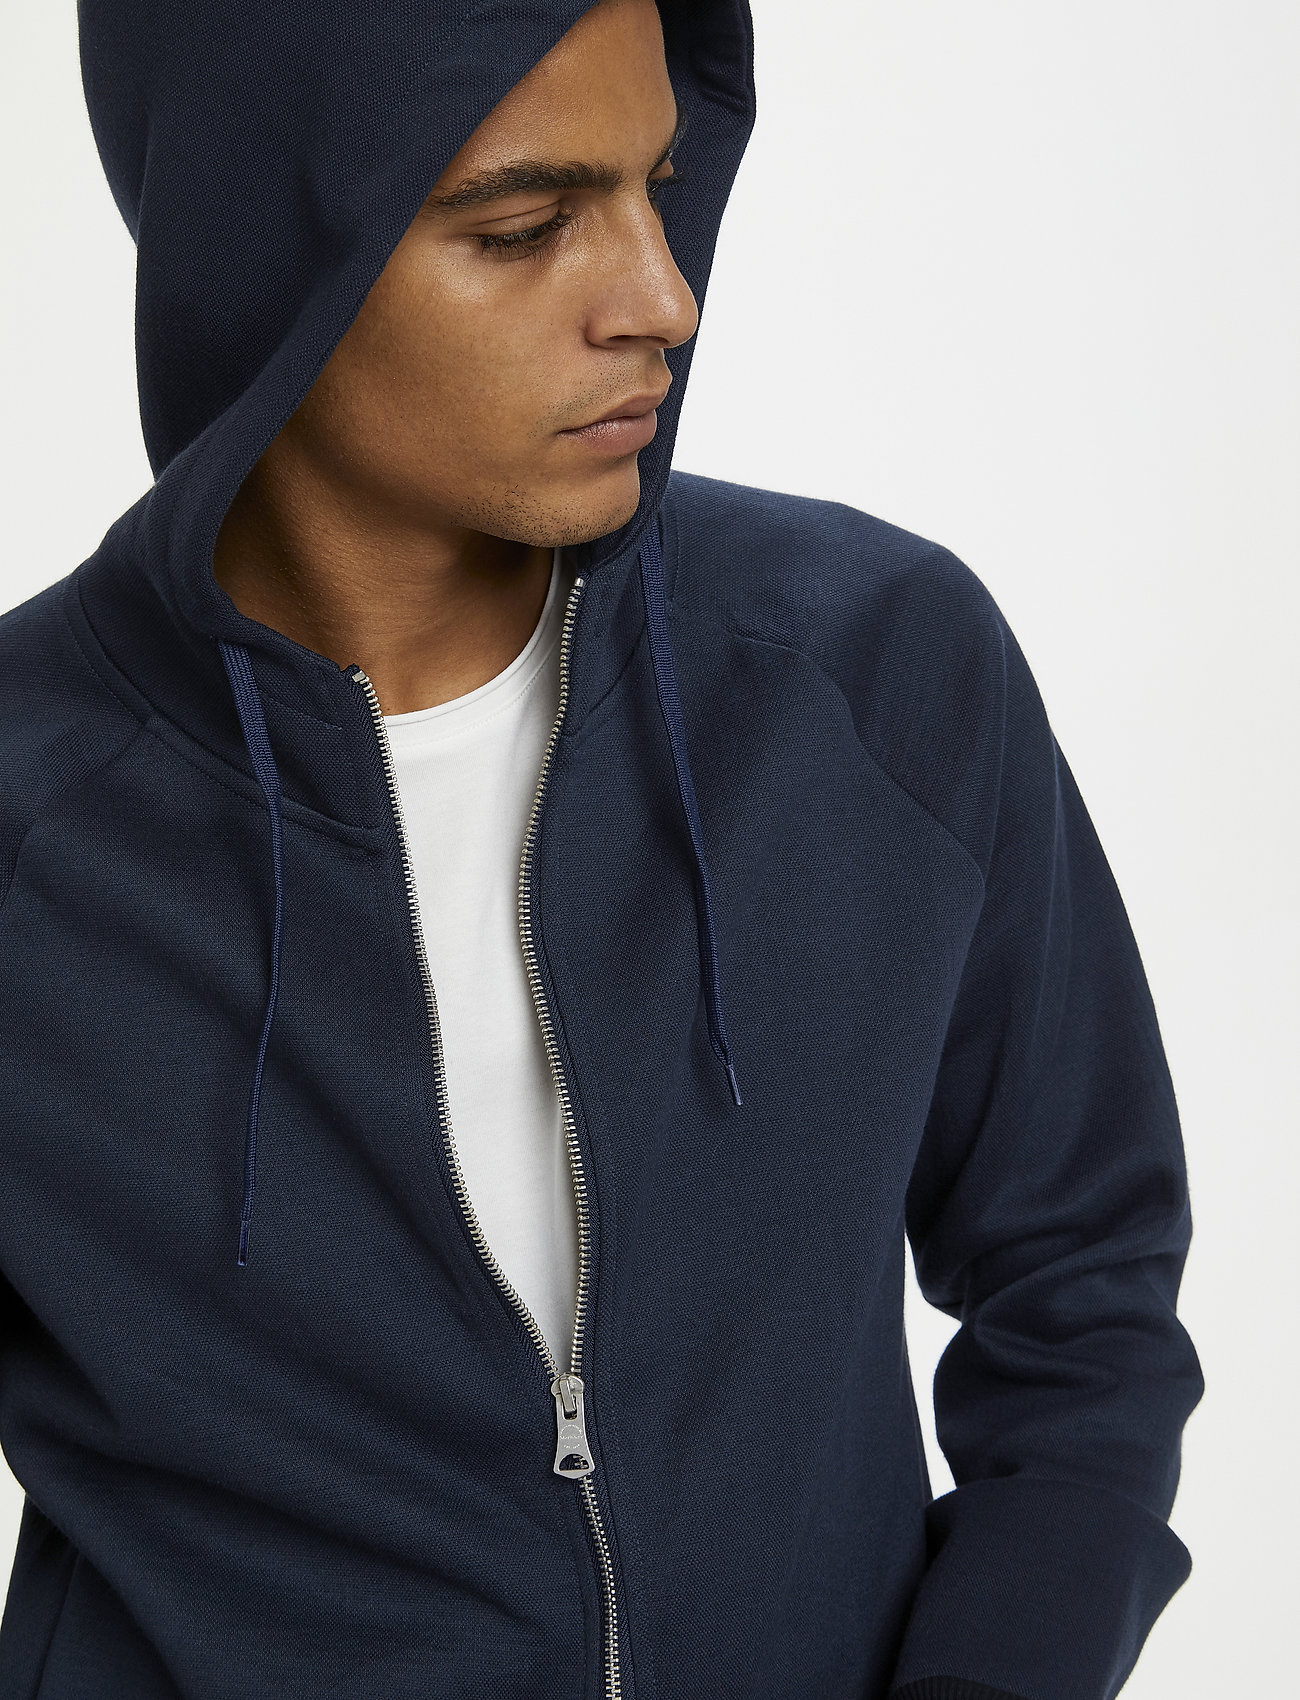 Matinique MAdrogo- Sweats et sweats à capuche 3ZEiMwZM ujDaX BAQxEWlM